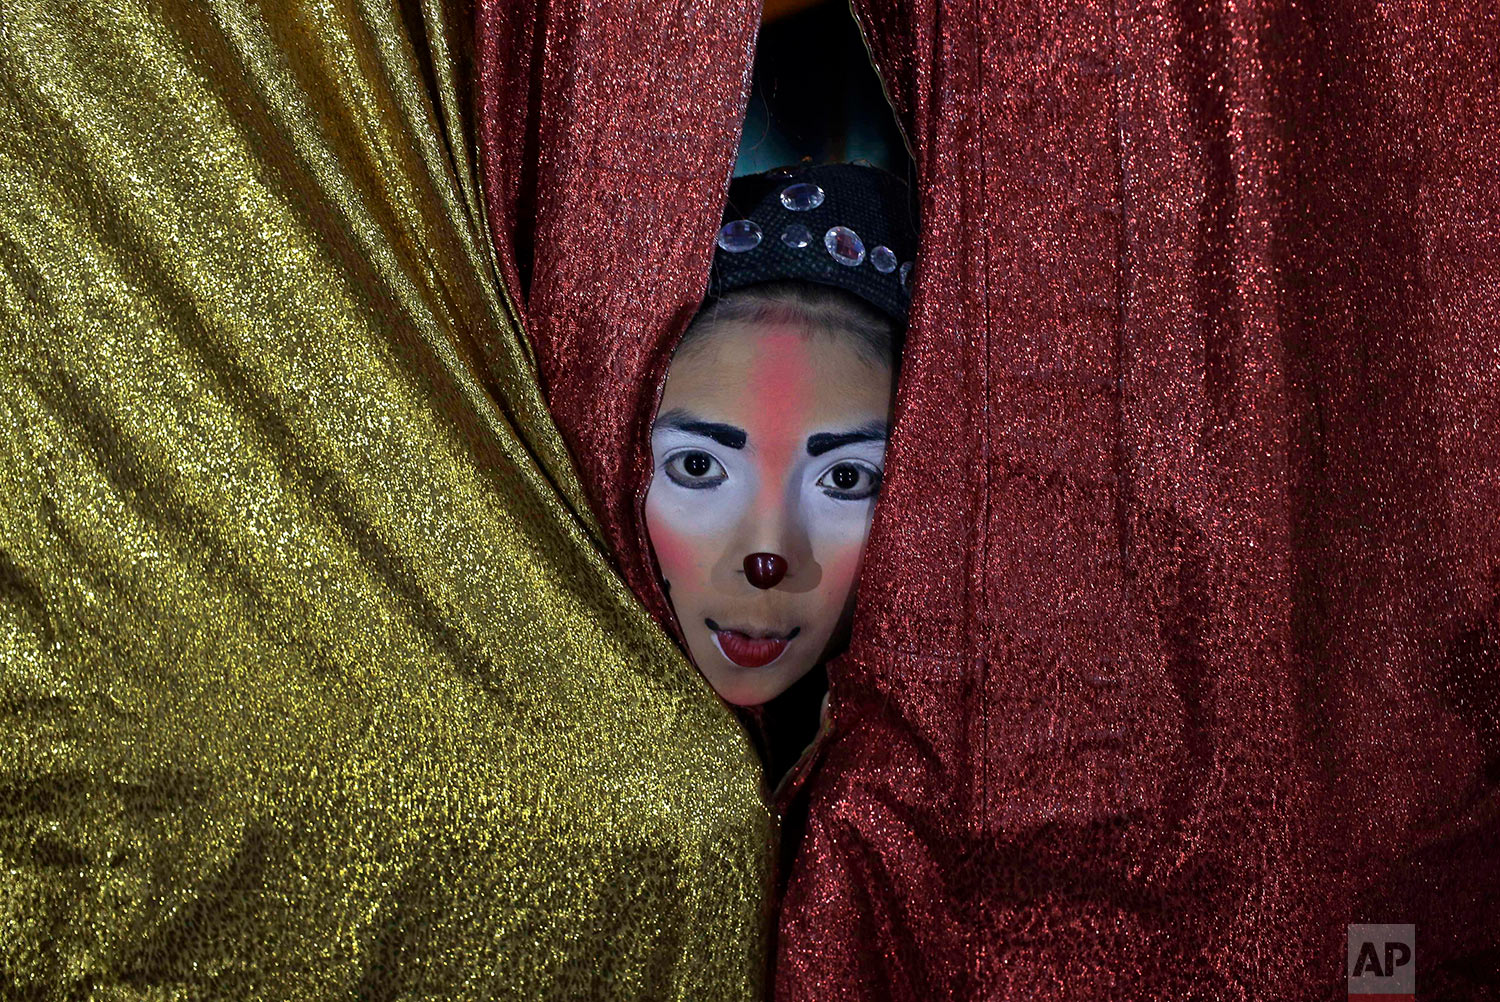 "Joshep Balta, a clown named ""Cachupito,"" peers through the tent curtain to see how many people are waiting for the show, put on by the International Circus, set up in the shanty town of Puente Piedra on the outskirts of Lima, Peru, July 20, 2018. Balta, a 12-year old clown whose parents work at the circus setting up and breaking down the encampment, was discovered by the circus two years ago when he was performing as a clown at street corners. (AP Photo/Martin Mejia)"